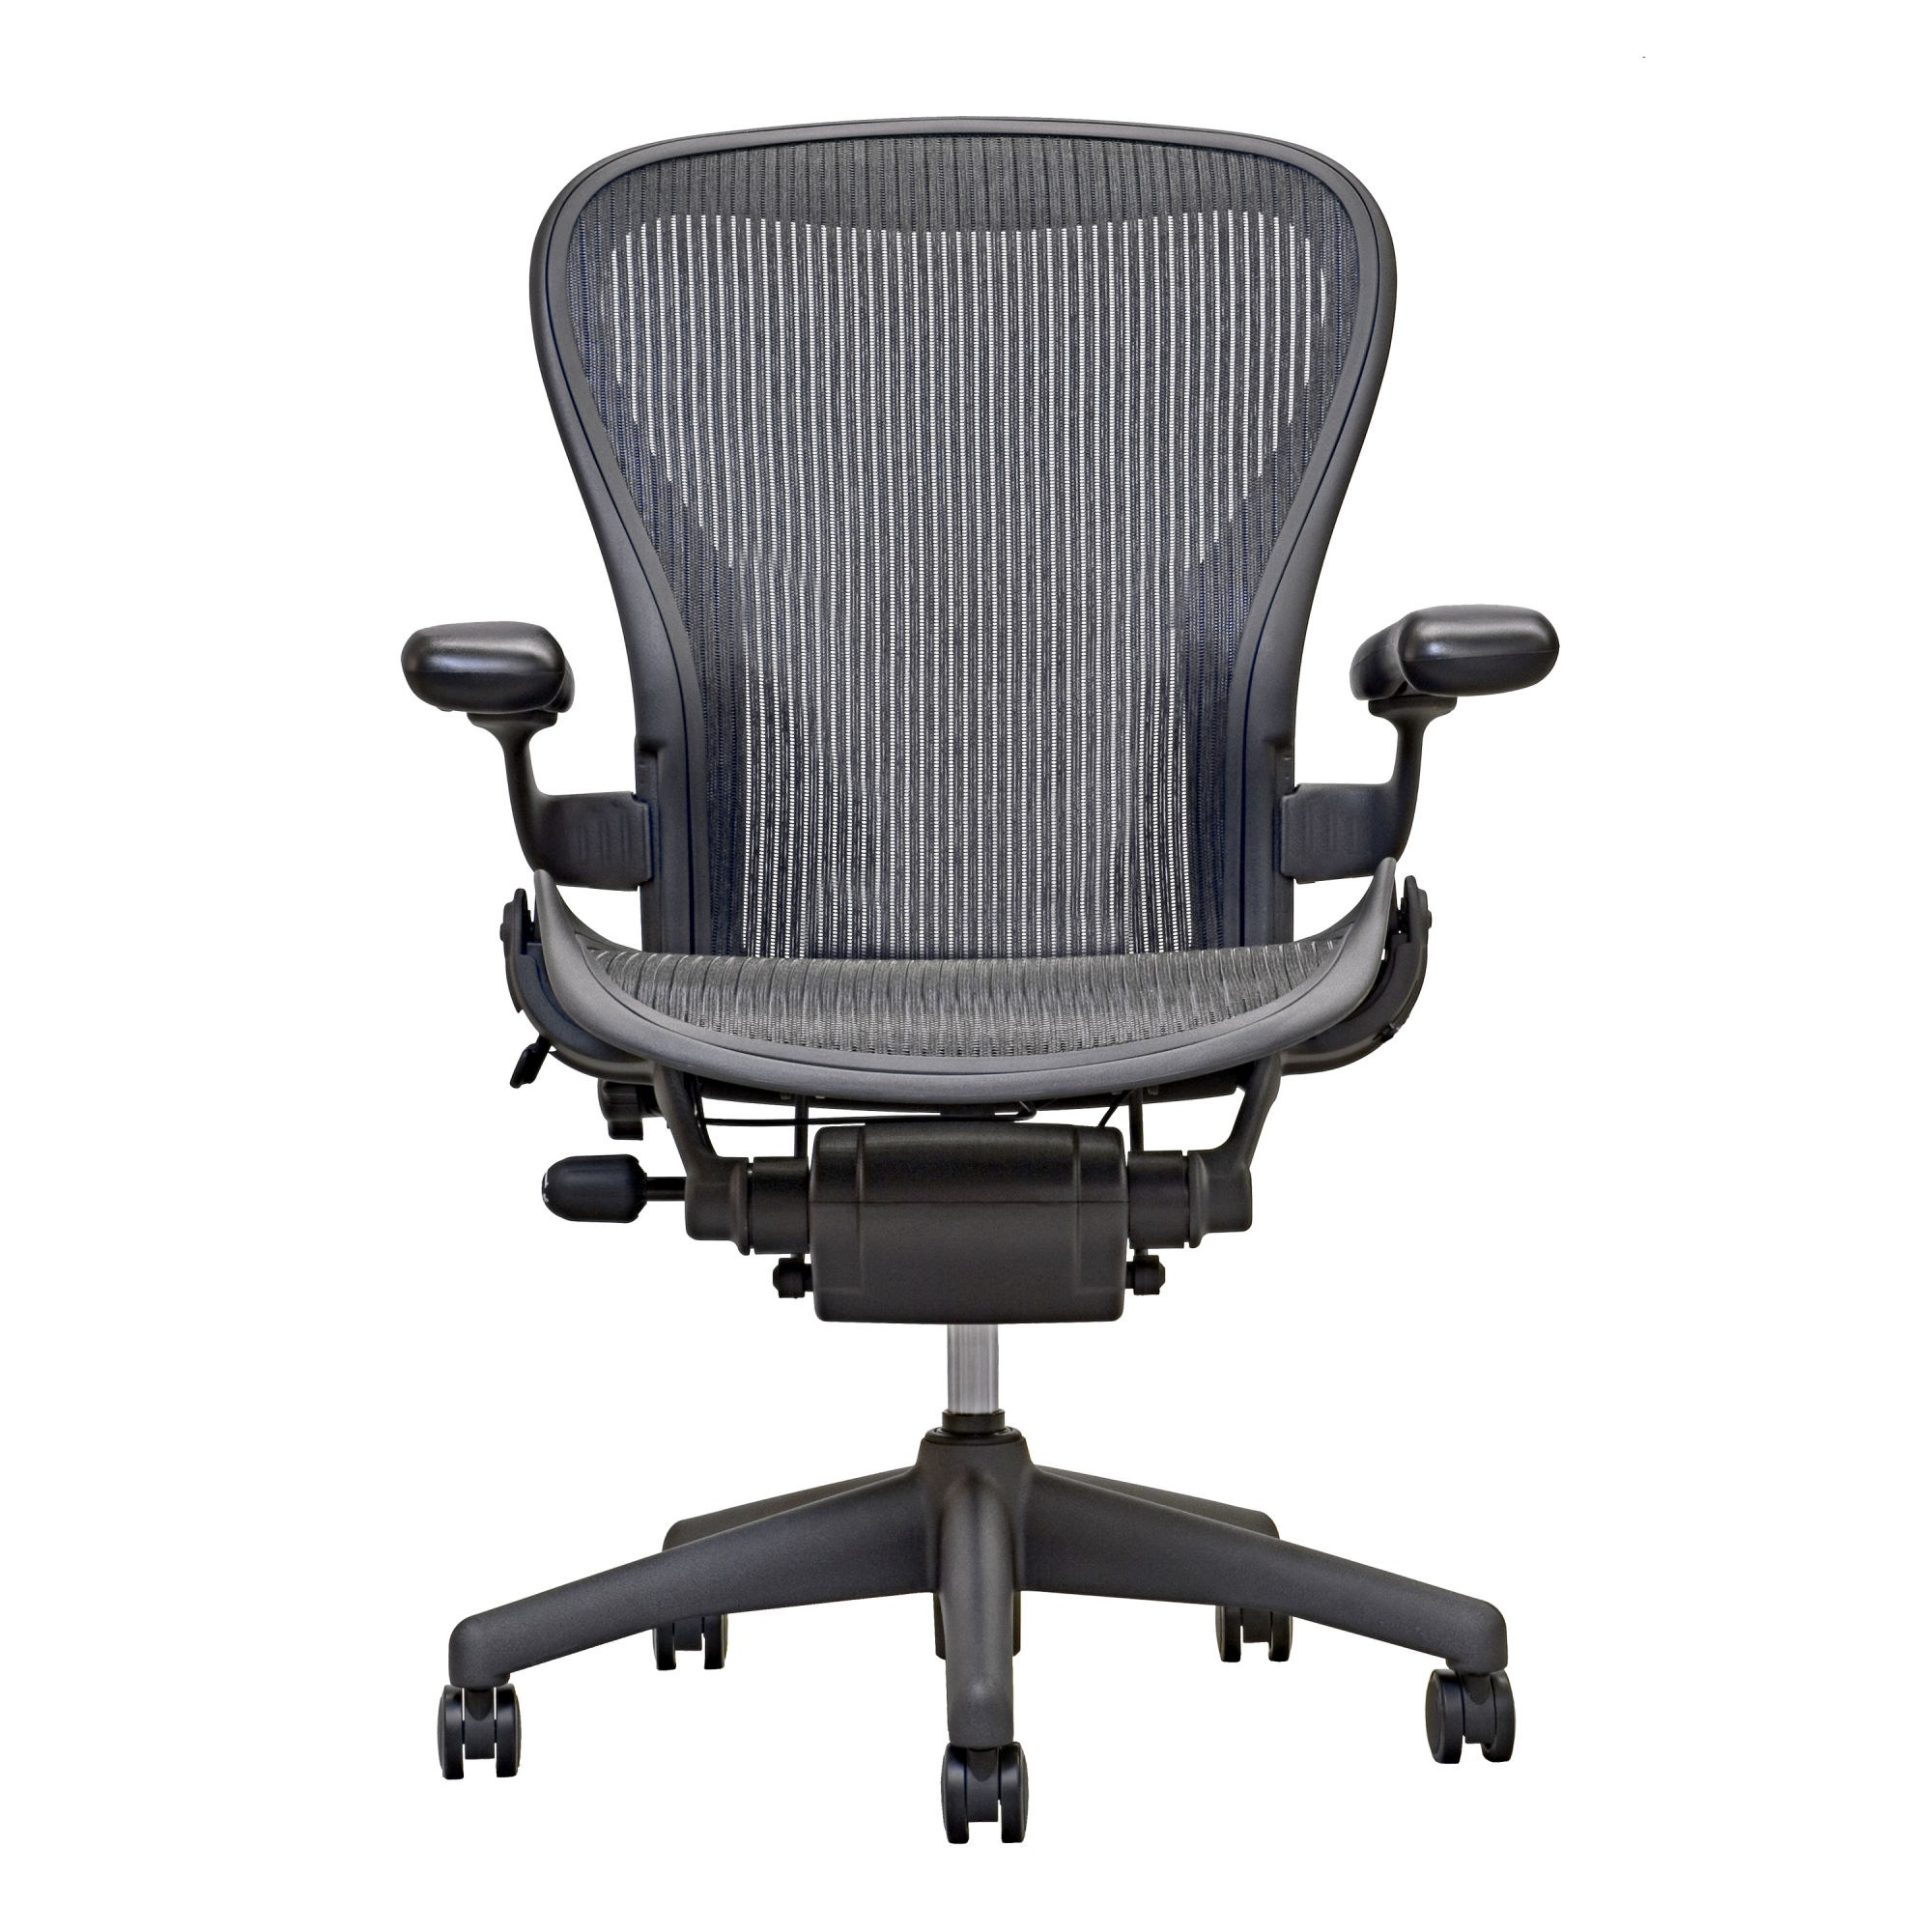 desk chair herman miller high end computer aeron basic model by ae101out